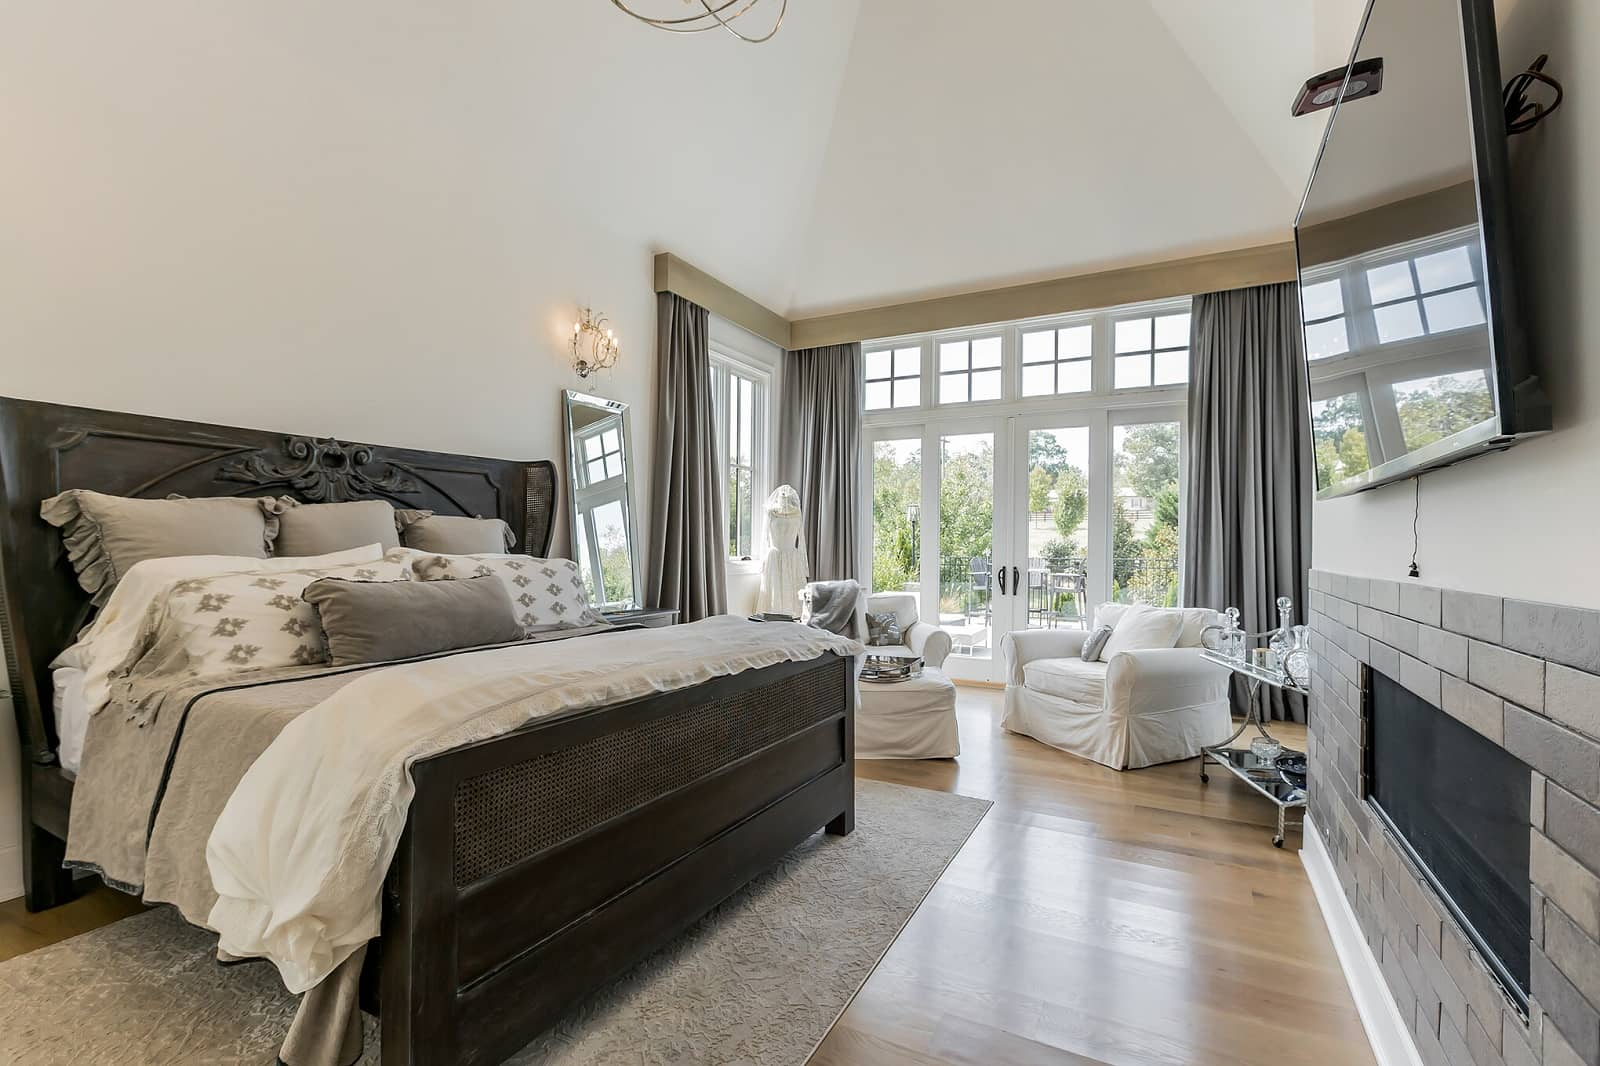 Real Estate Photography in Murfreesboro - TN - USA - Bedroom View